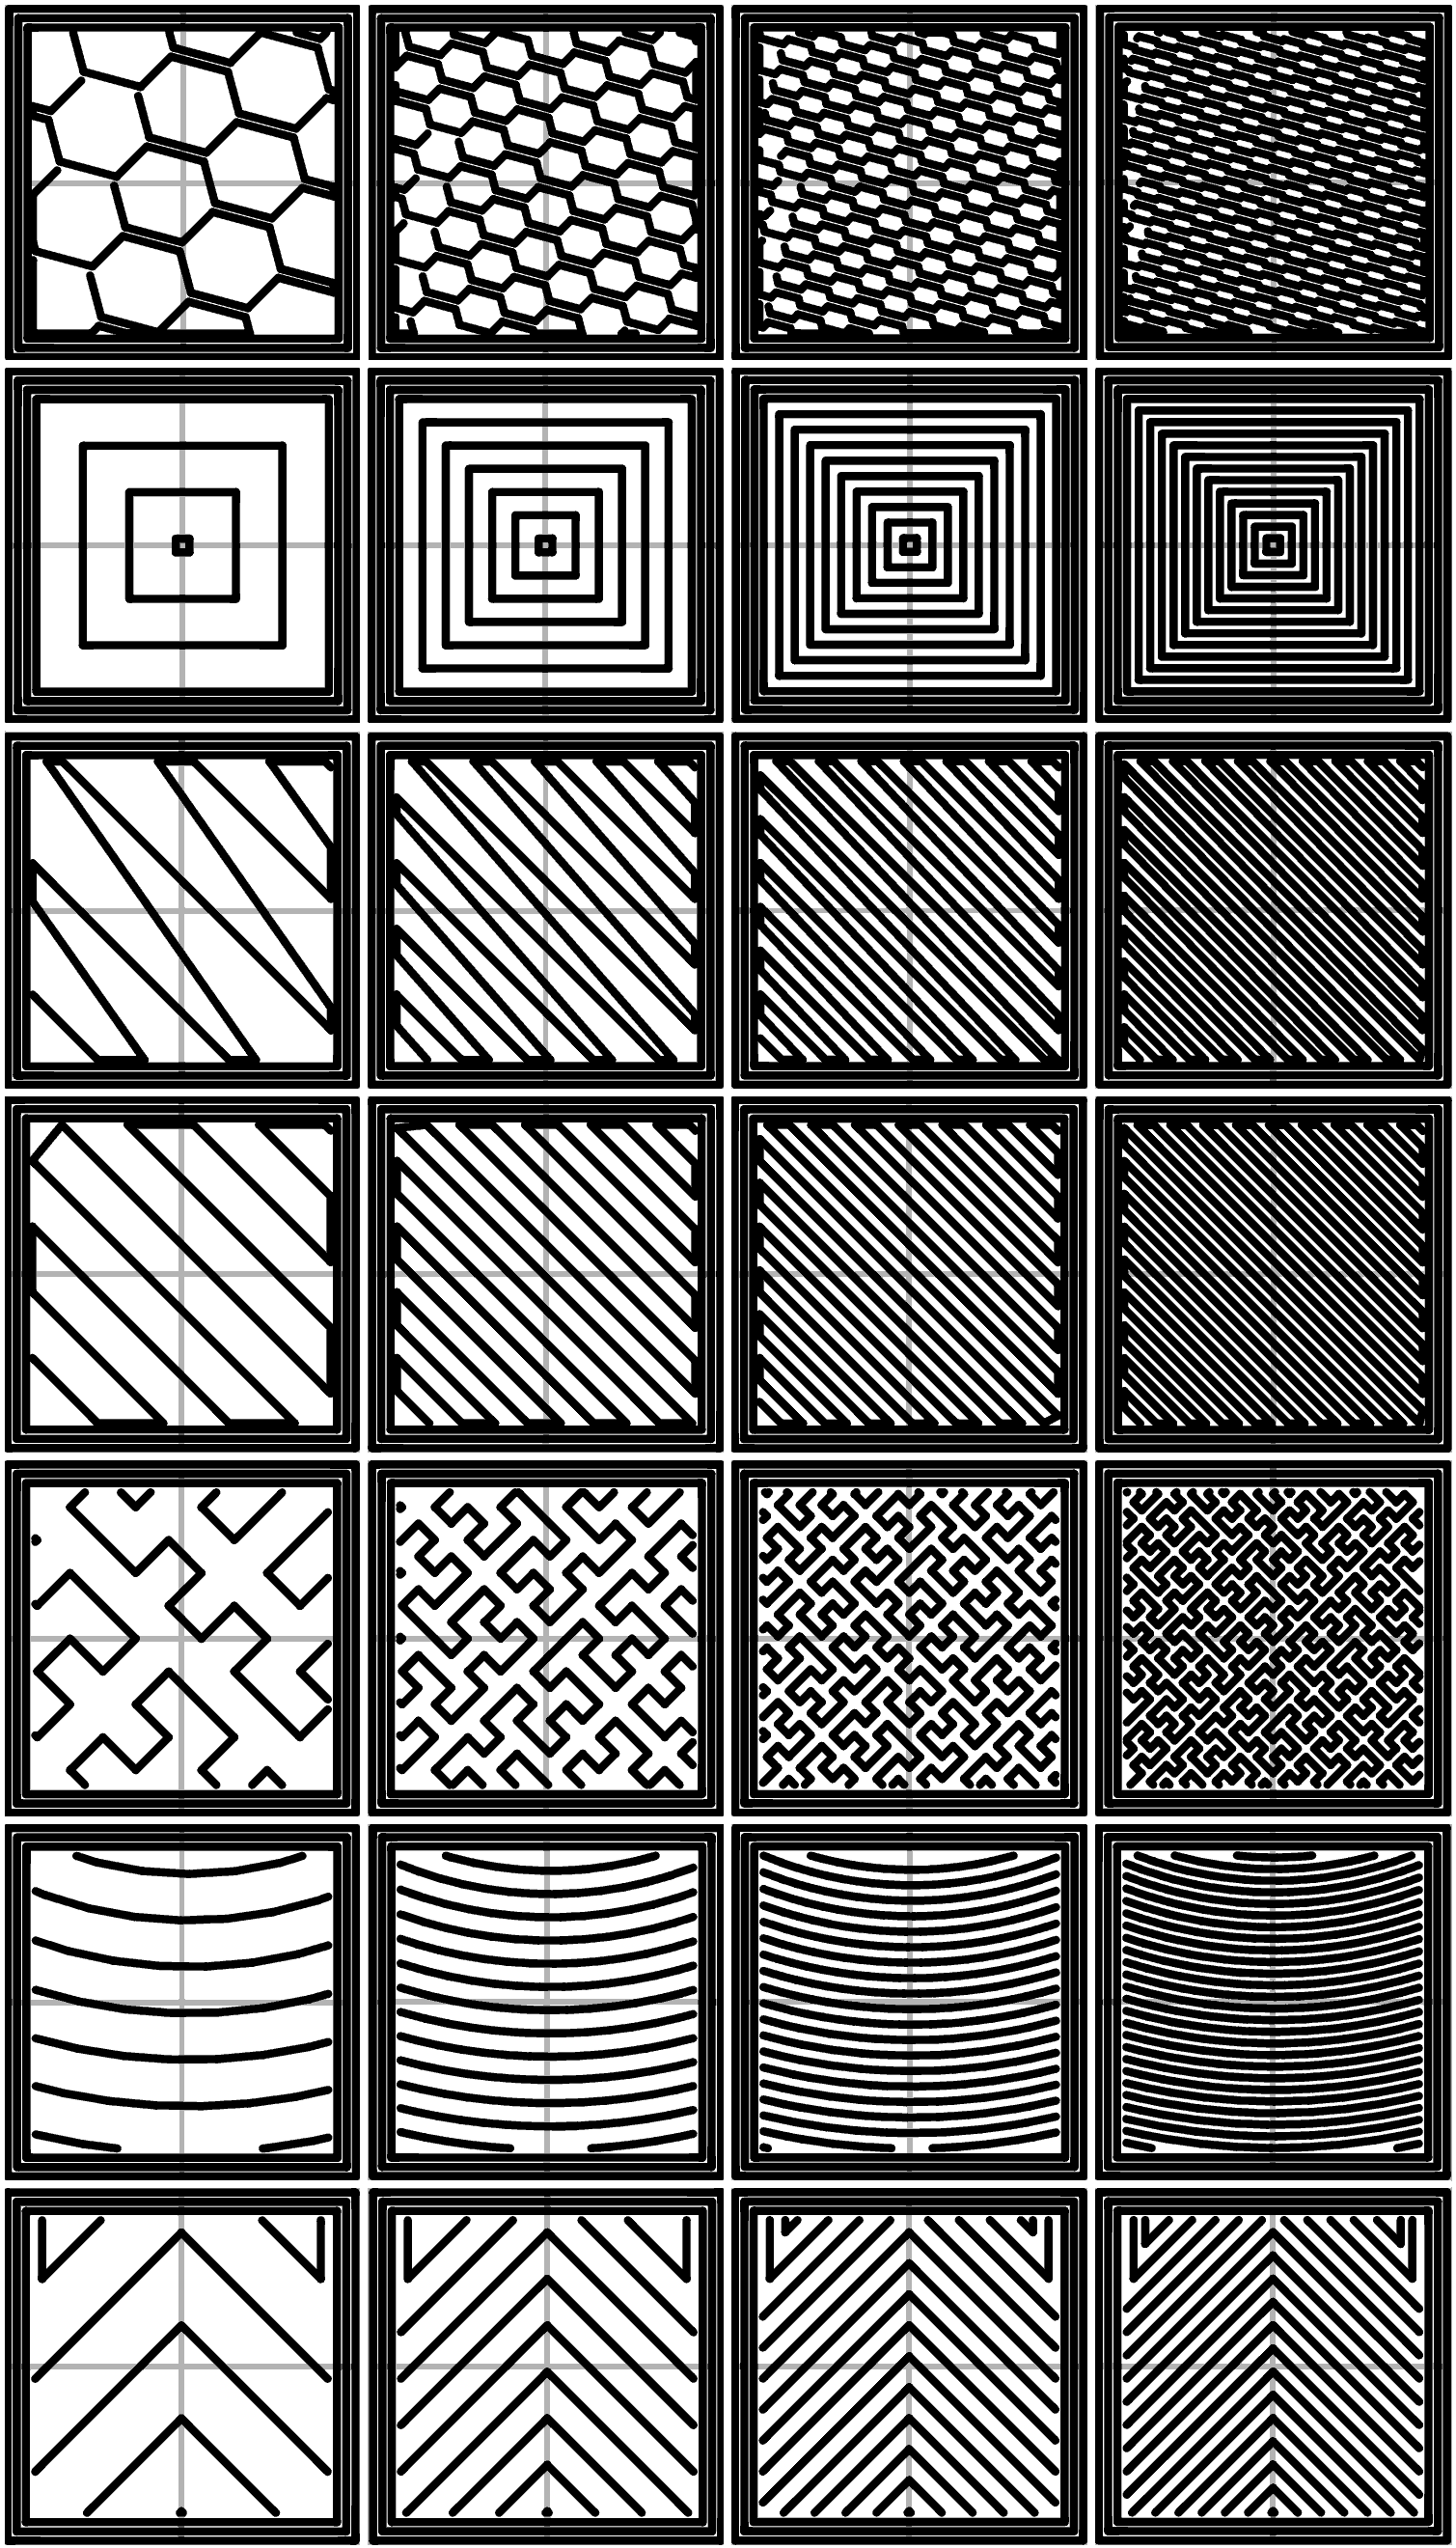 Infill patterns at varying densities. Left to Right: 20%,40%,60%,80%. Top to Bottom: Honeycomb, Concentric, Line, Rectilinear, Hilbert Curve, Archimedean Chords, Octagram Spiral